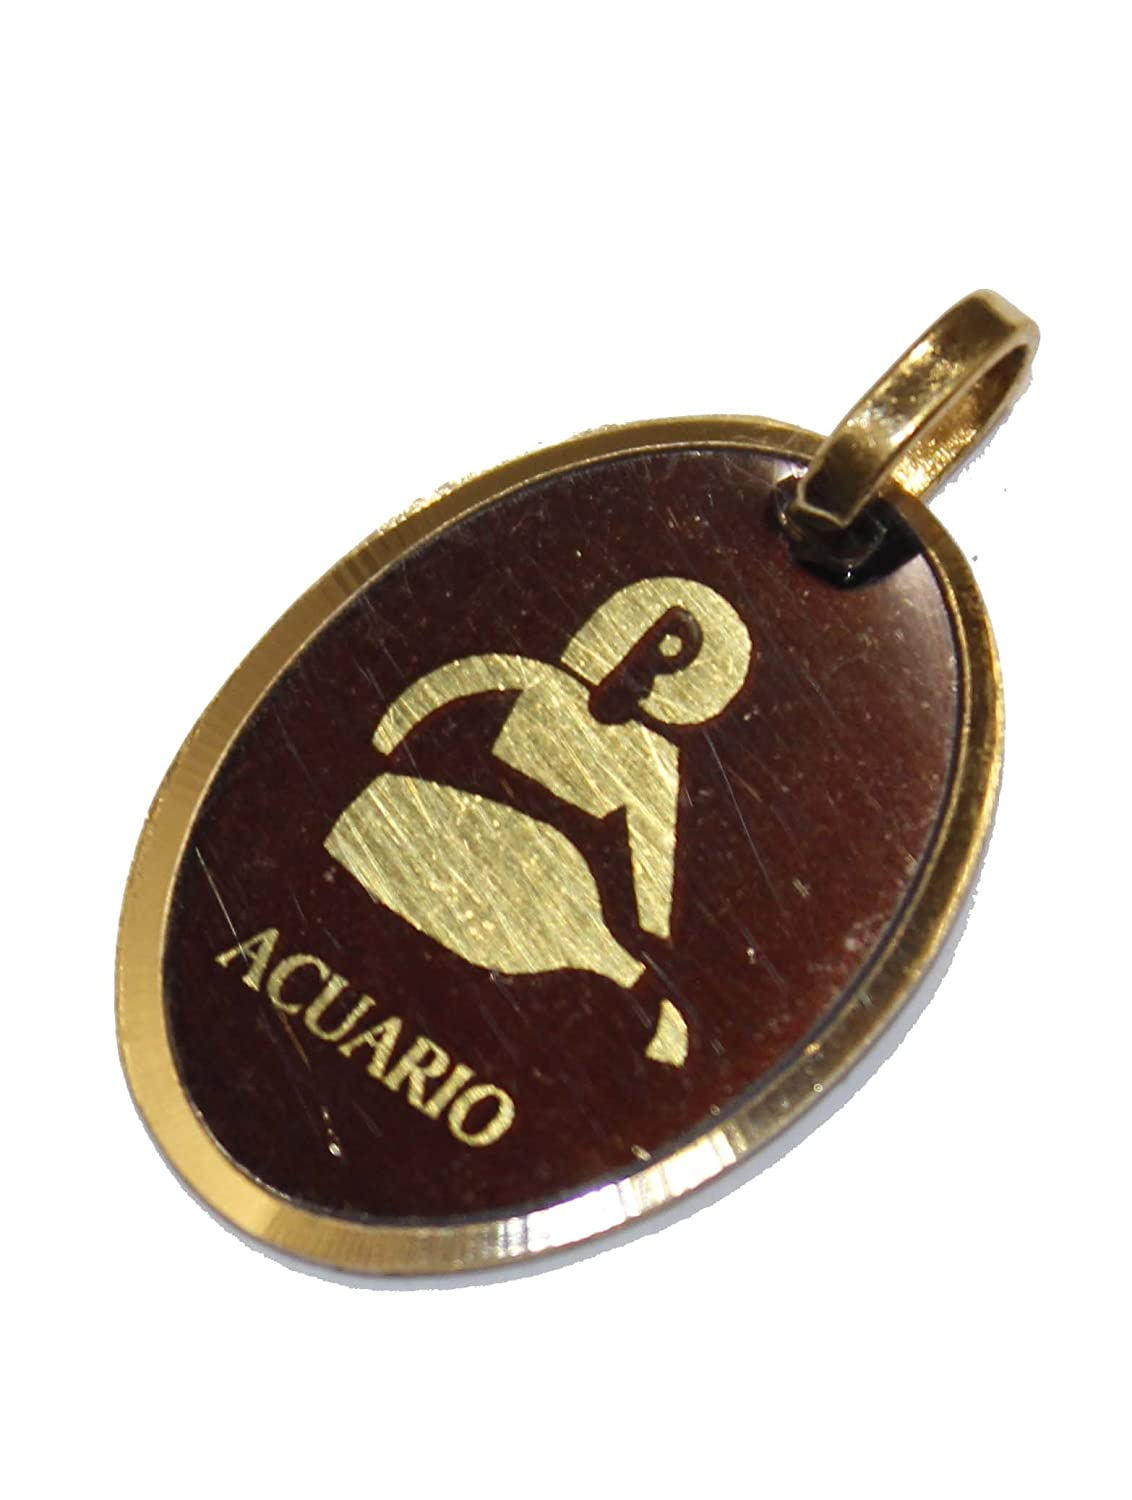 Amazon.com: Diamantados of Florida Aquarium Zodiac Medal - Acuario Pendant Medalla 18k Gold Plated Medal with 18 Inch Chain: Jewelry